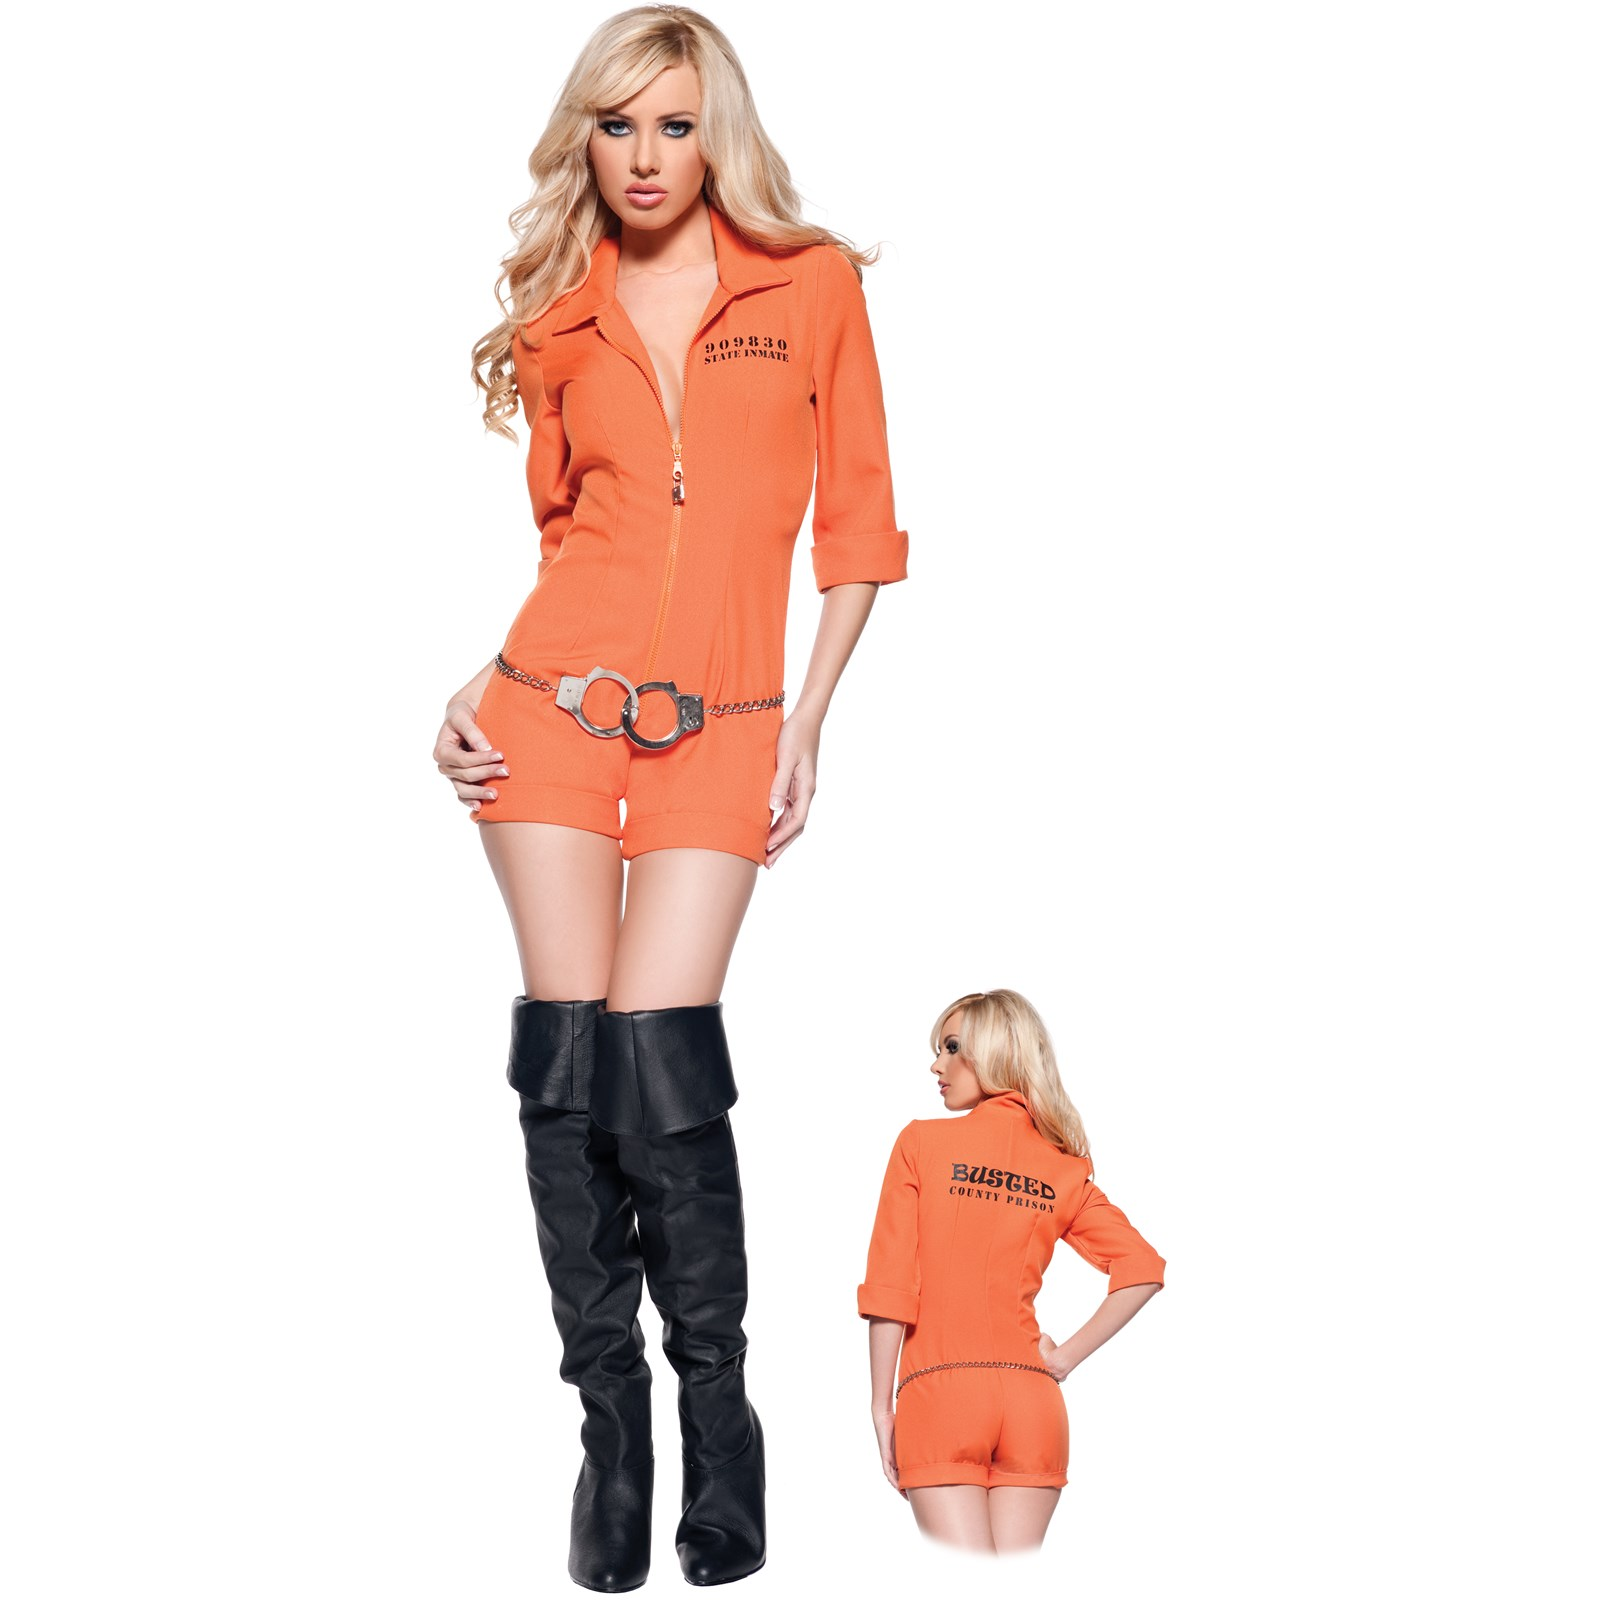 Busted Adult Costume | BuyCostumes.com